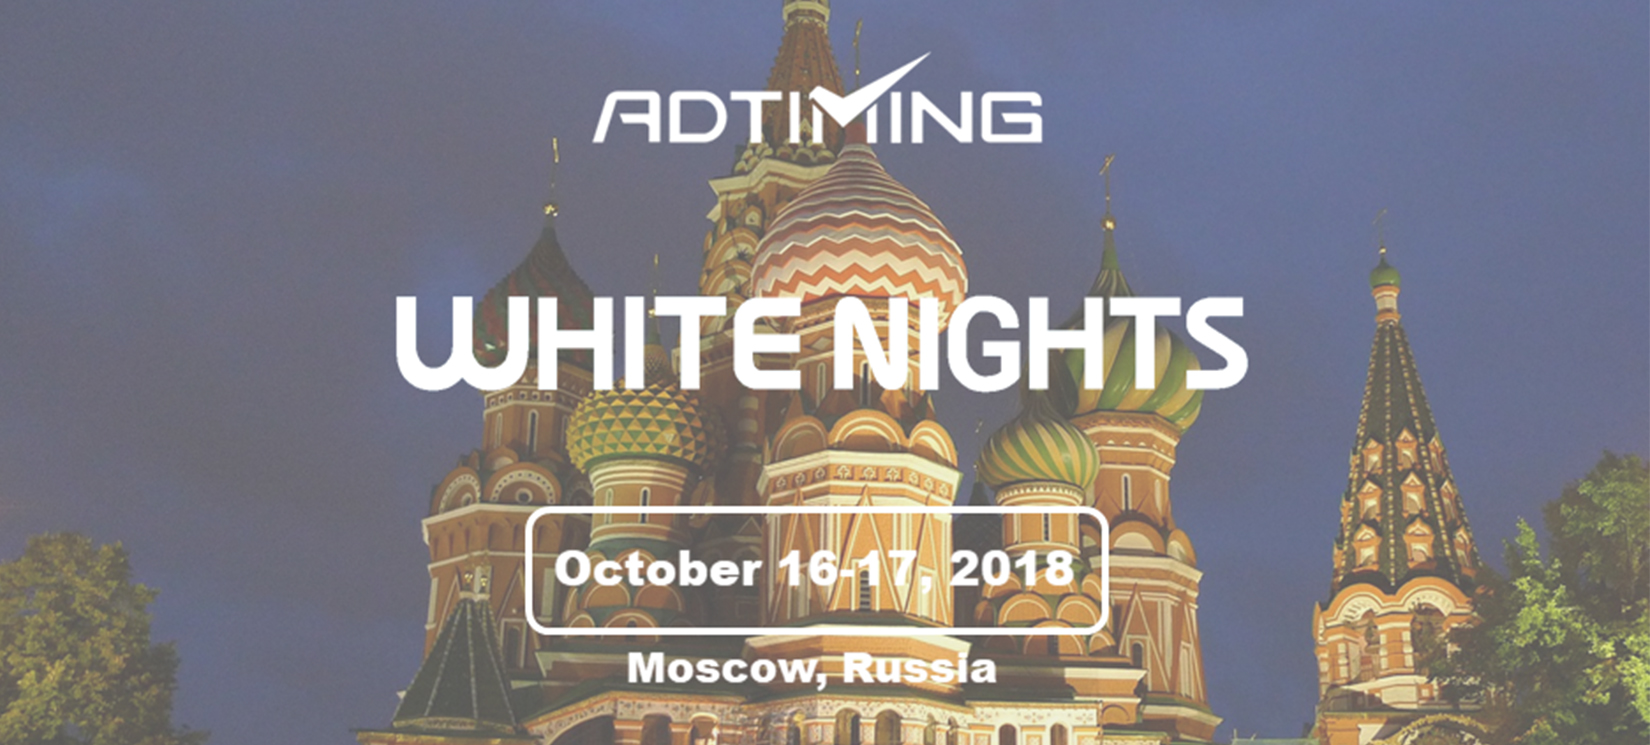 White Night Conference Banner